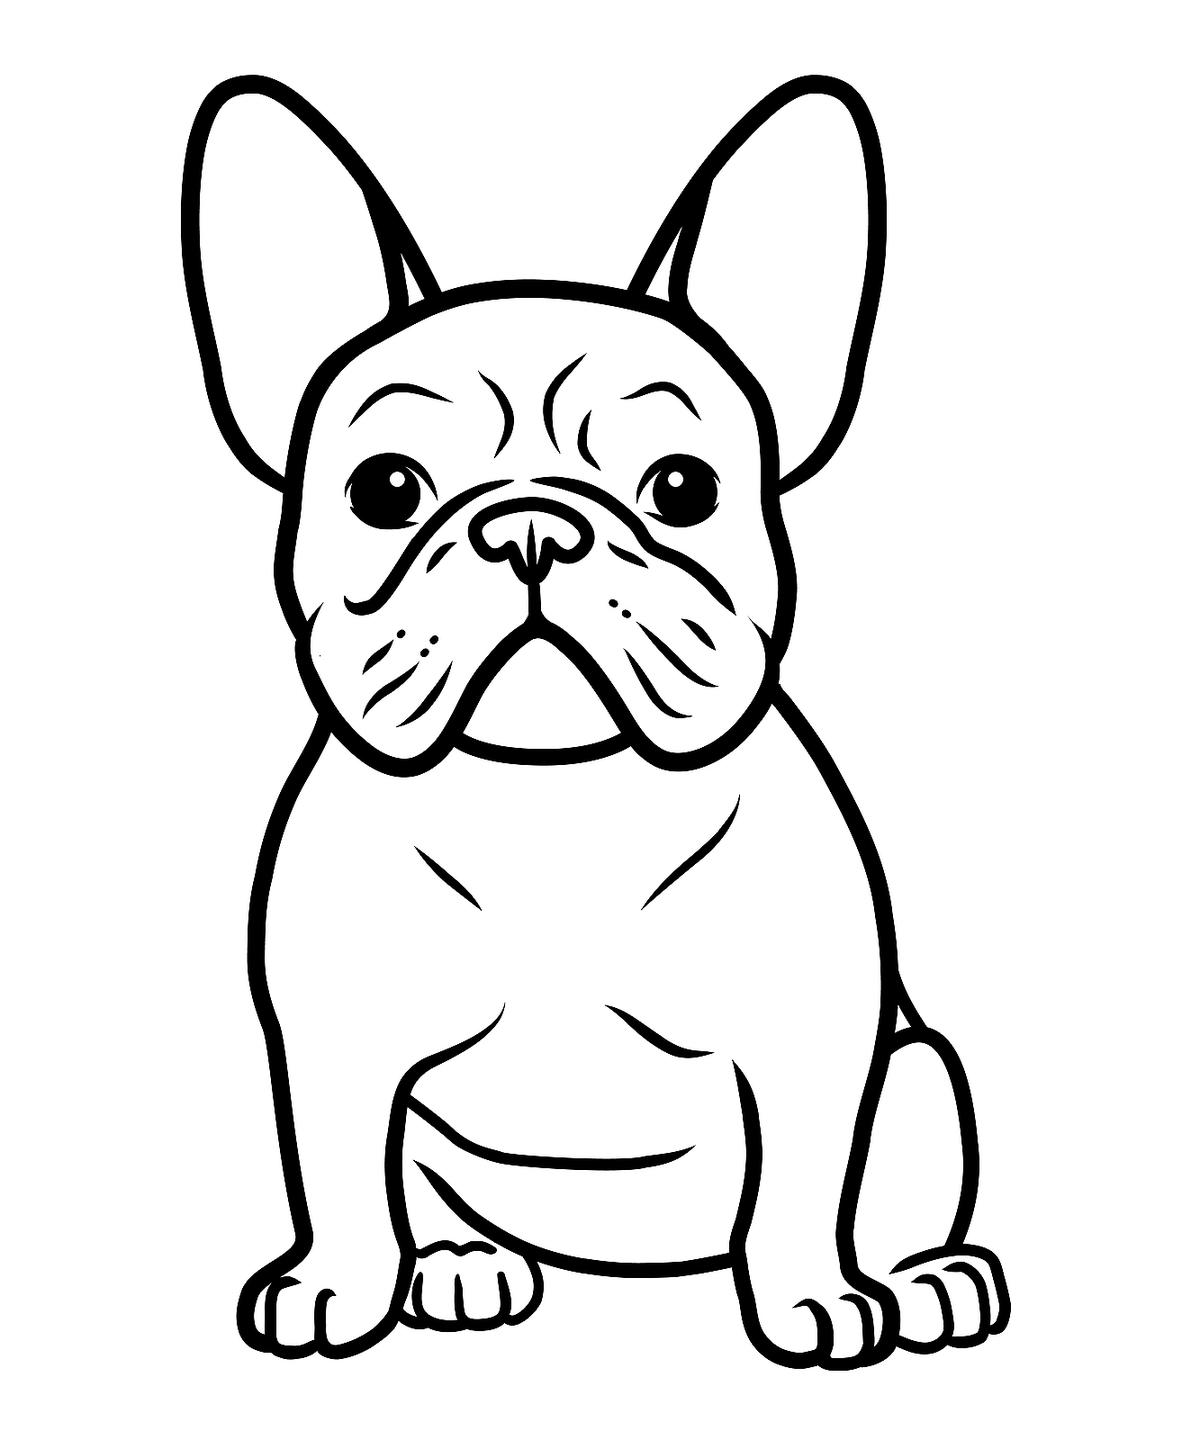 dog color pages free printable cute dog coloring pages collection images dog pages color